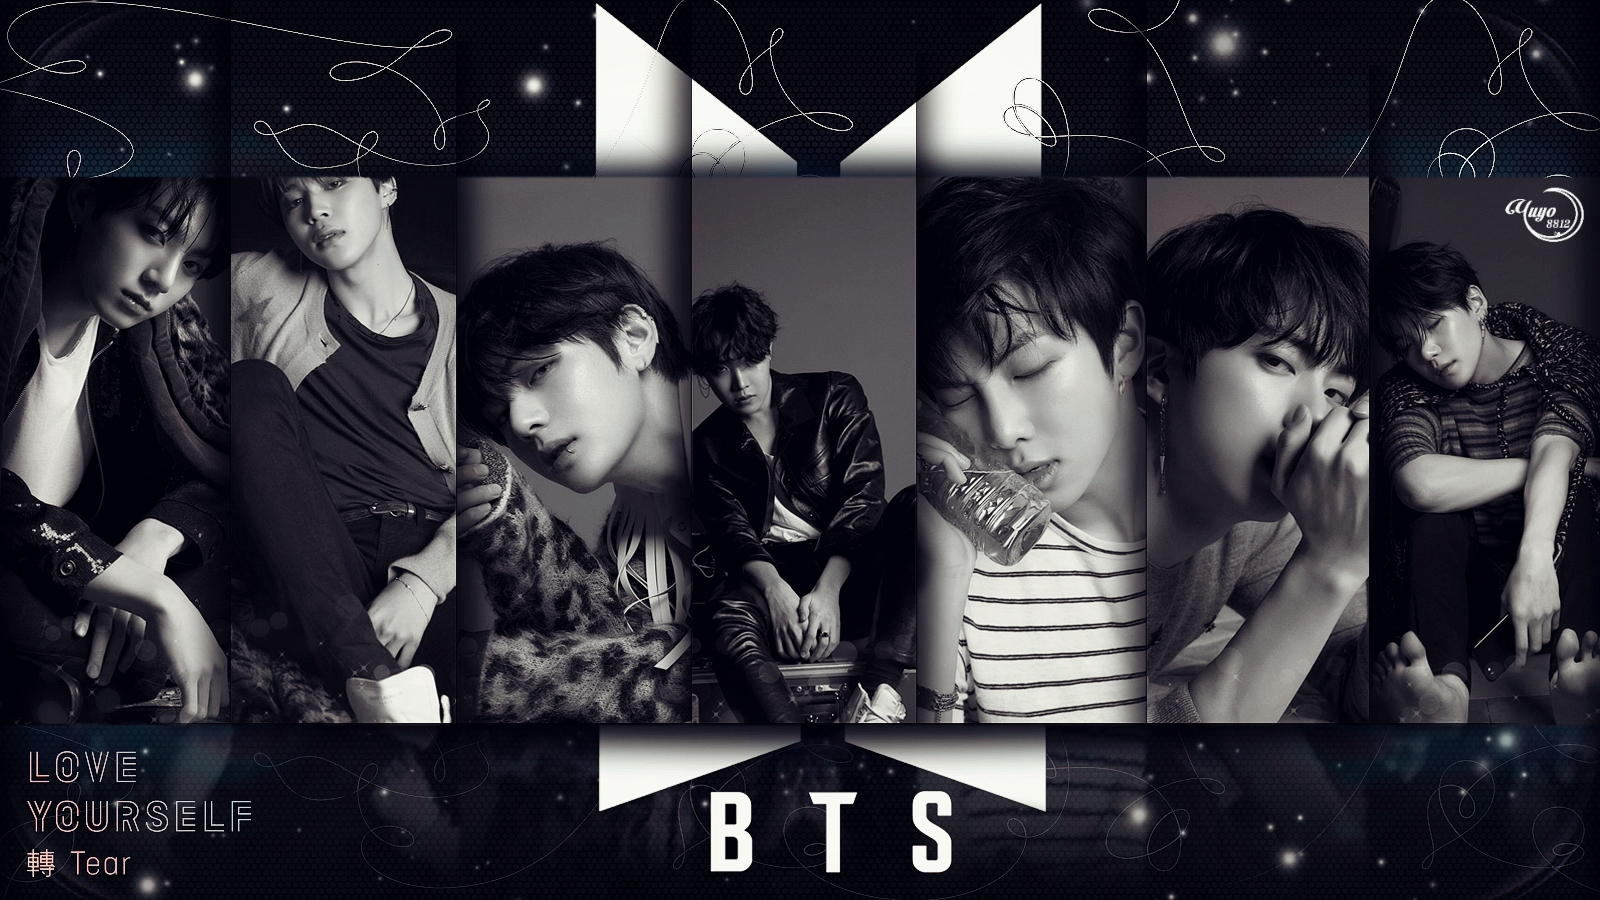 BTS FAKE LOVE #WALLPAPER